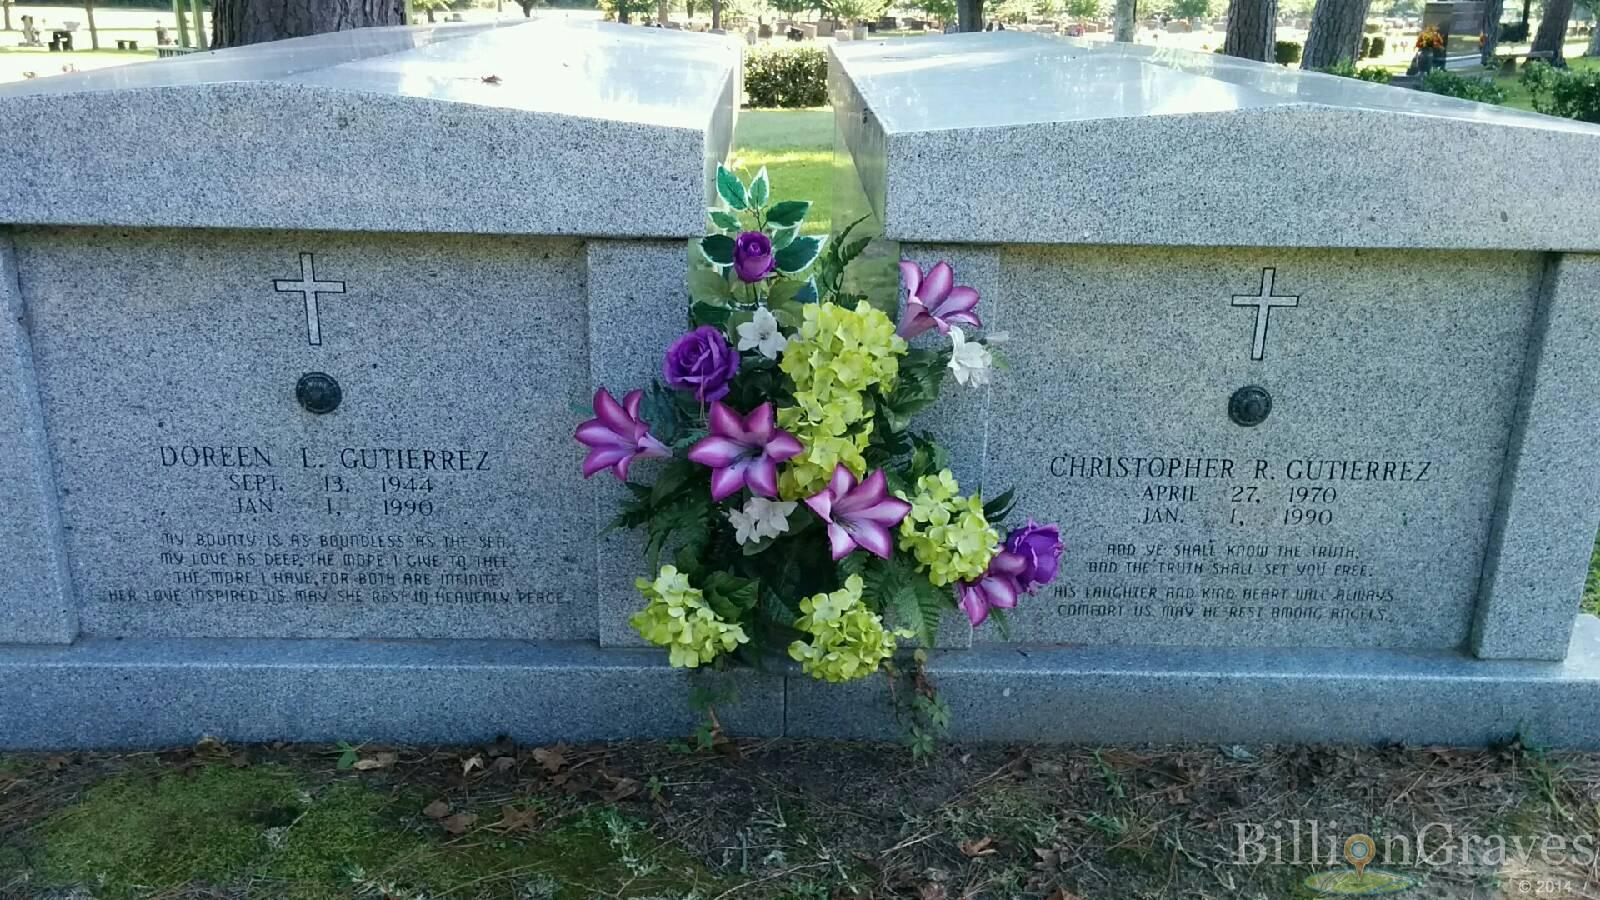 Lufkin (TX) United States  city photos gallery : ... , Cemetery, and Grave Record | Lufkin, Texas, United States 11414833